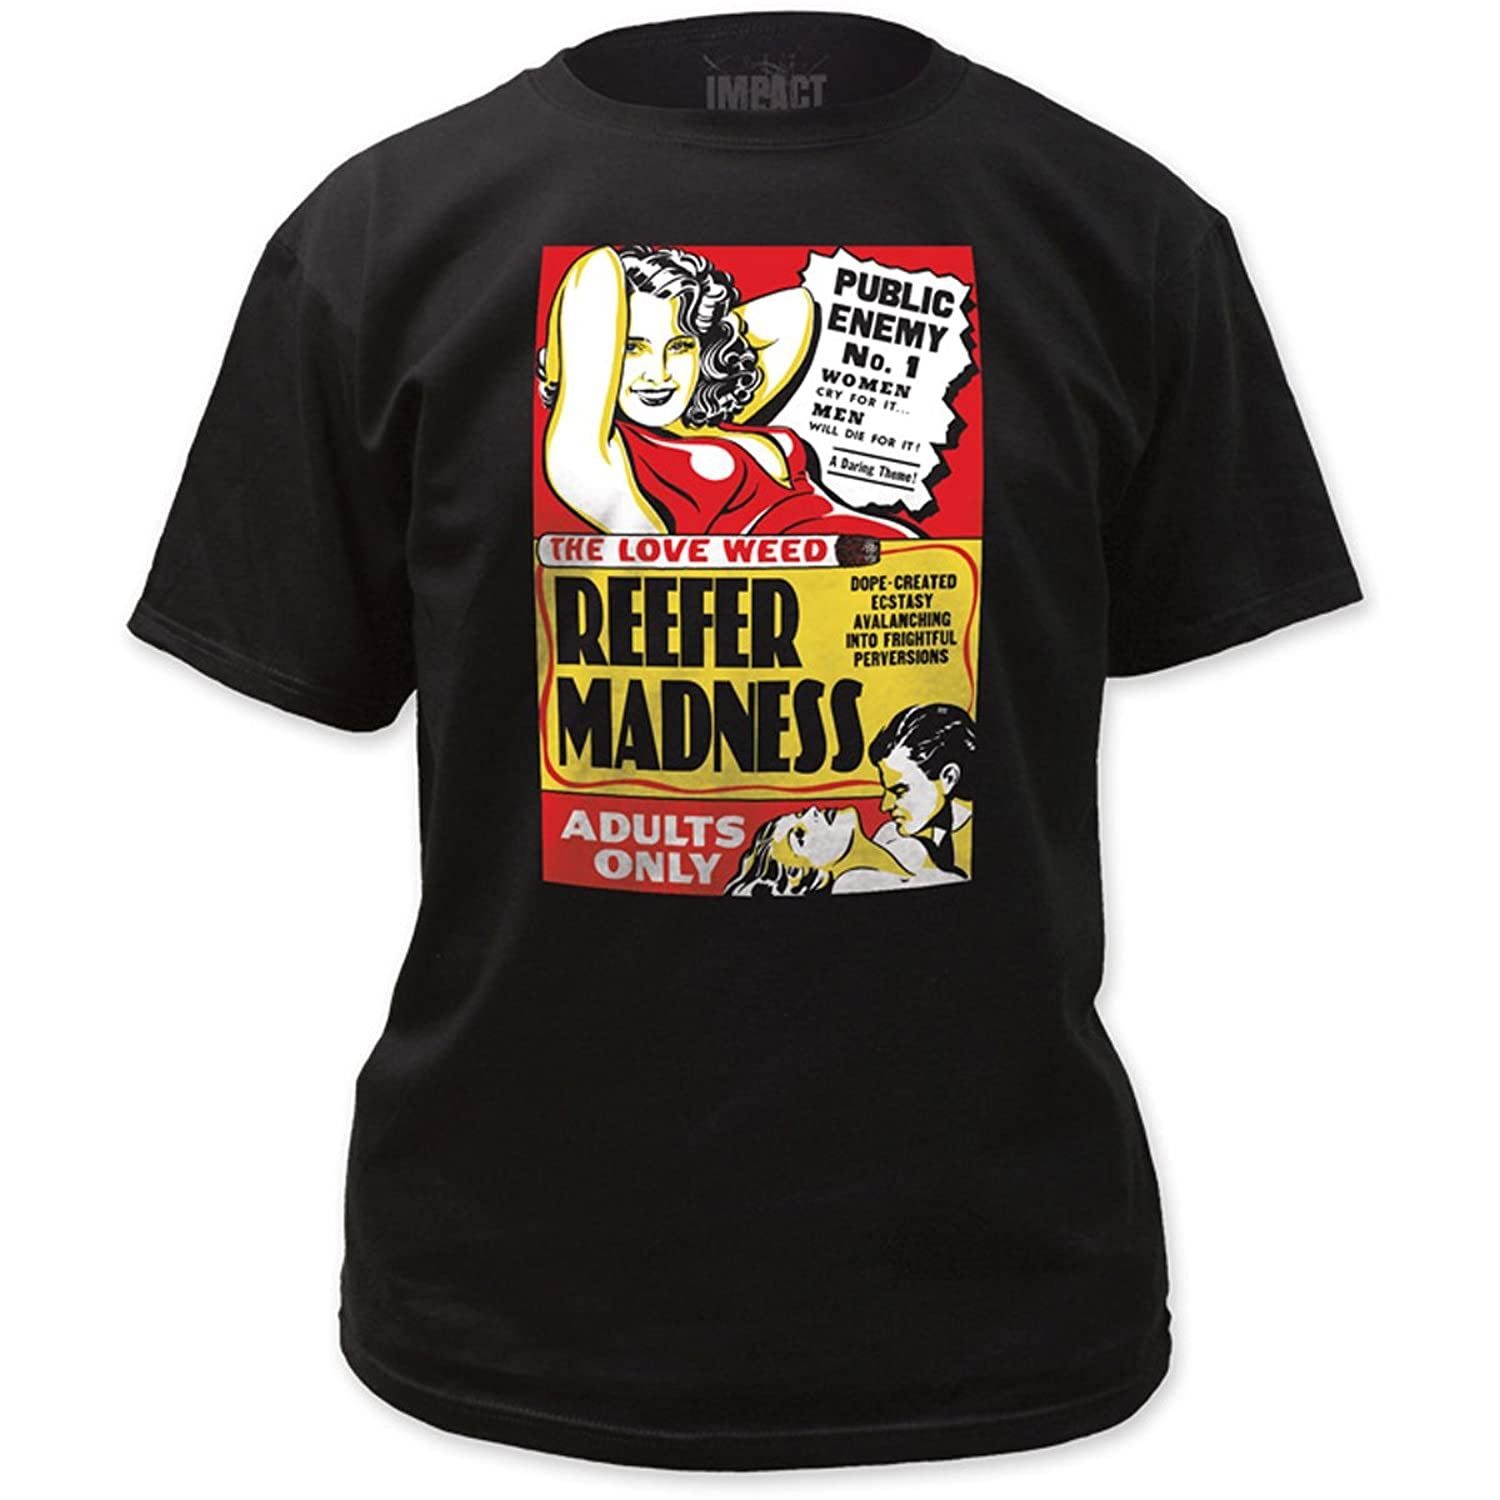 Impact Originals - Mens Reefer Madness Fitted T-Shirt in Black